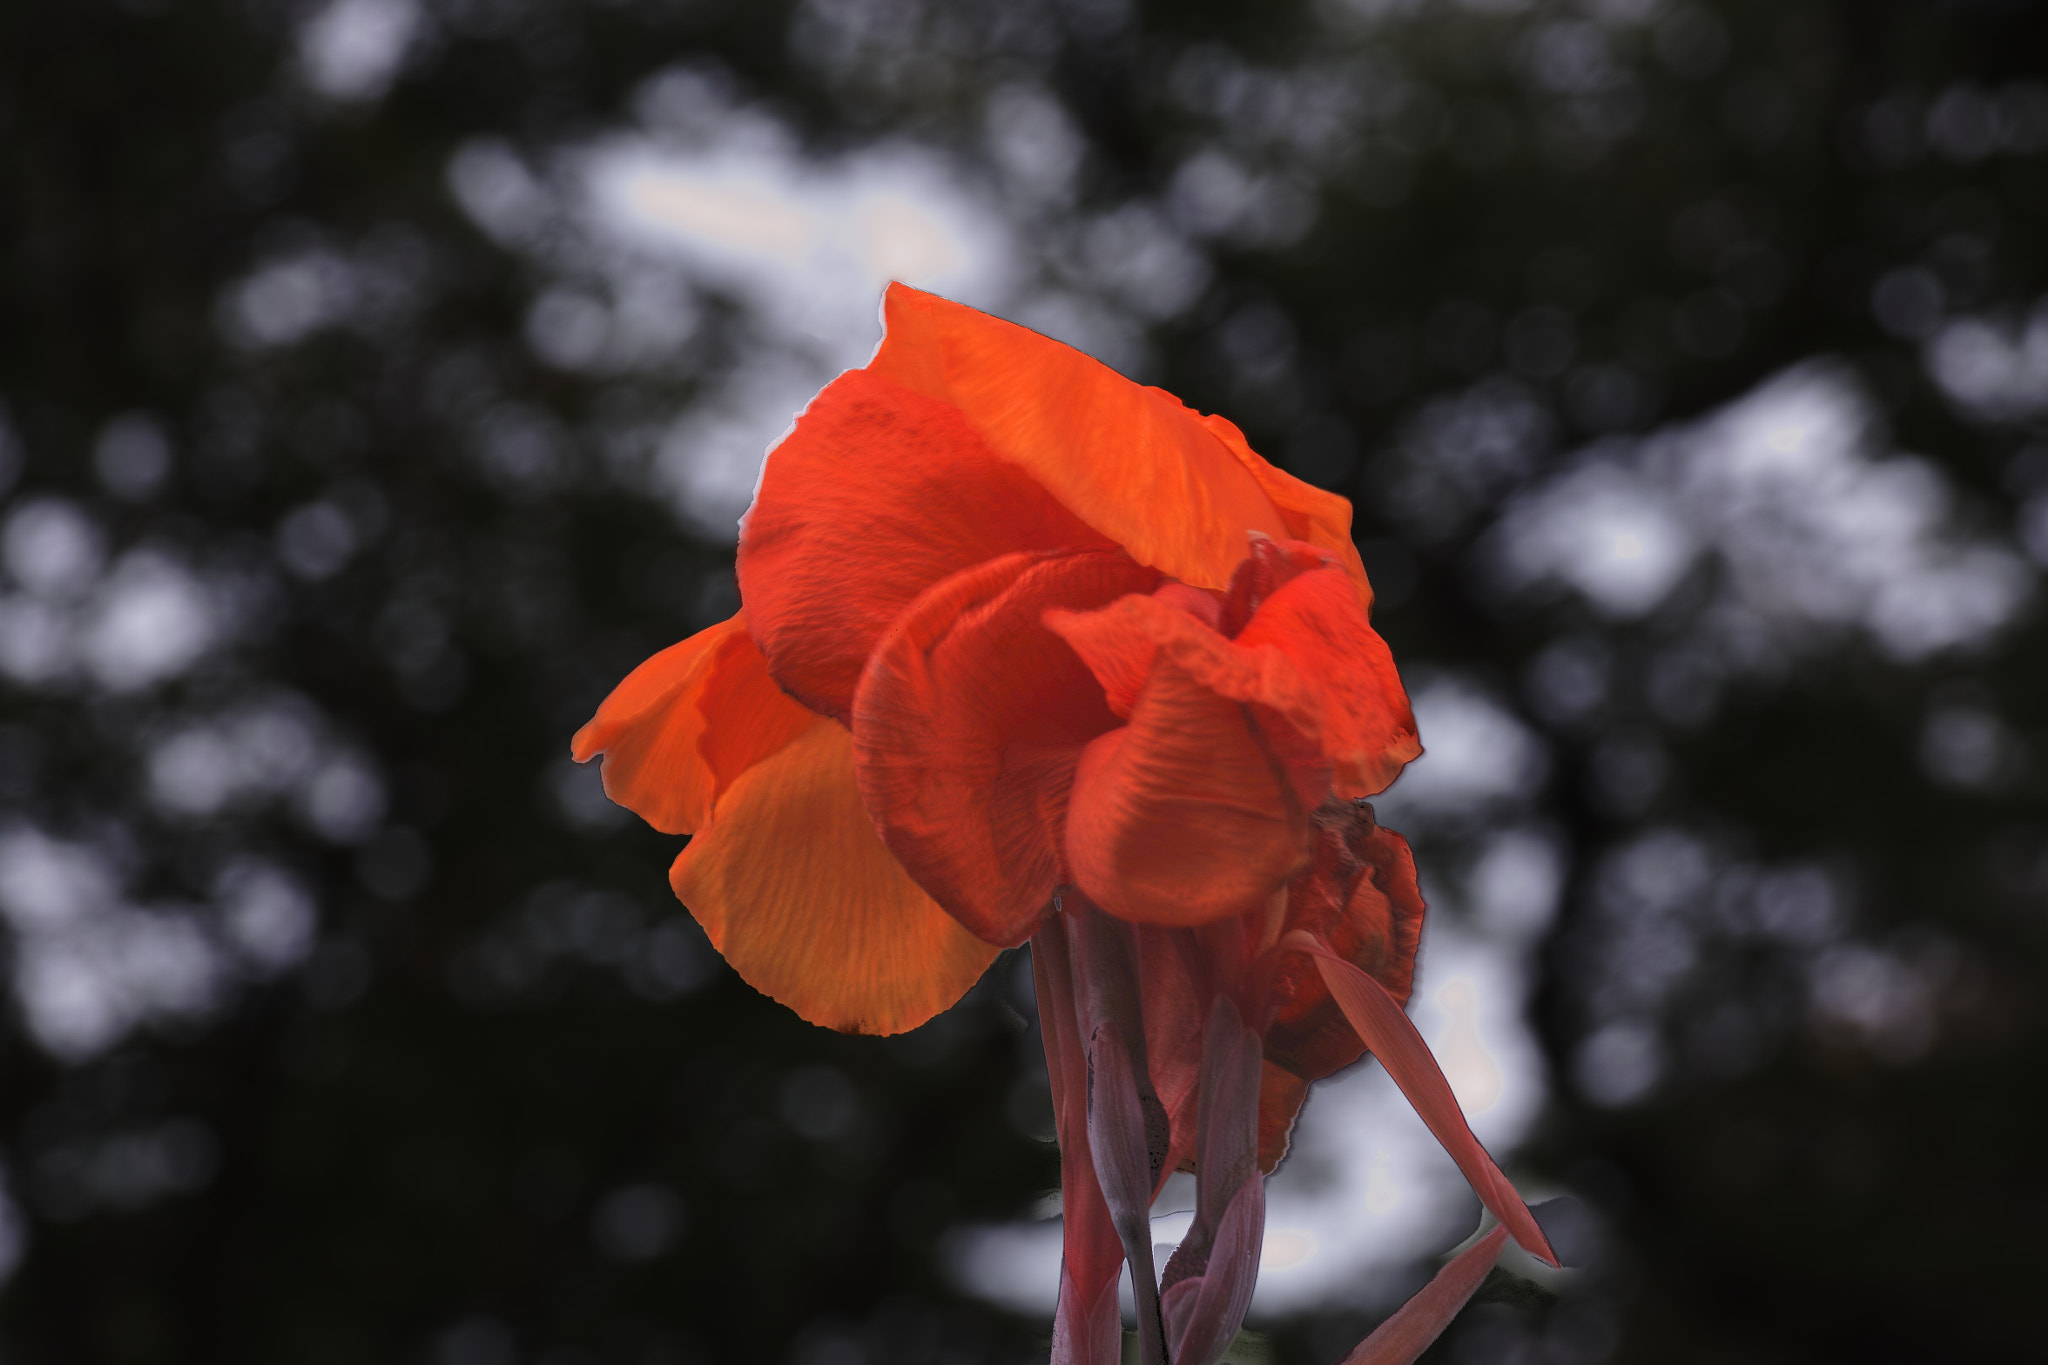 Photograph Orange flower by marbee .info on 500px